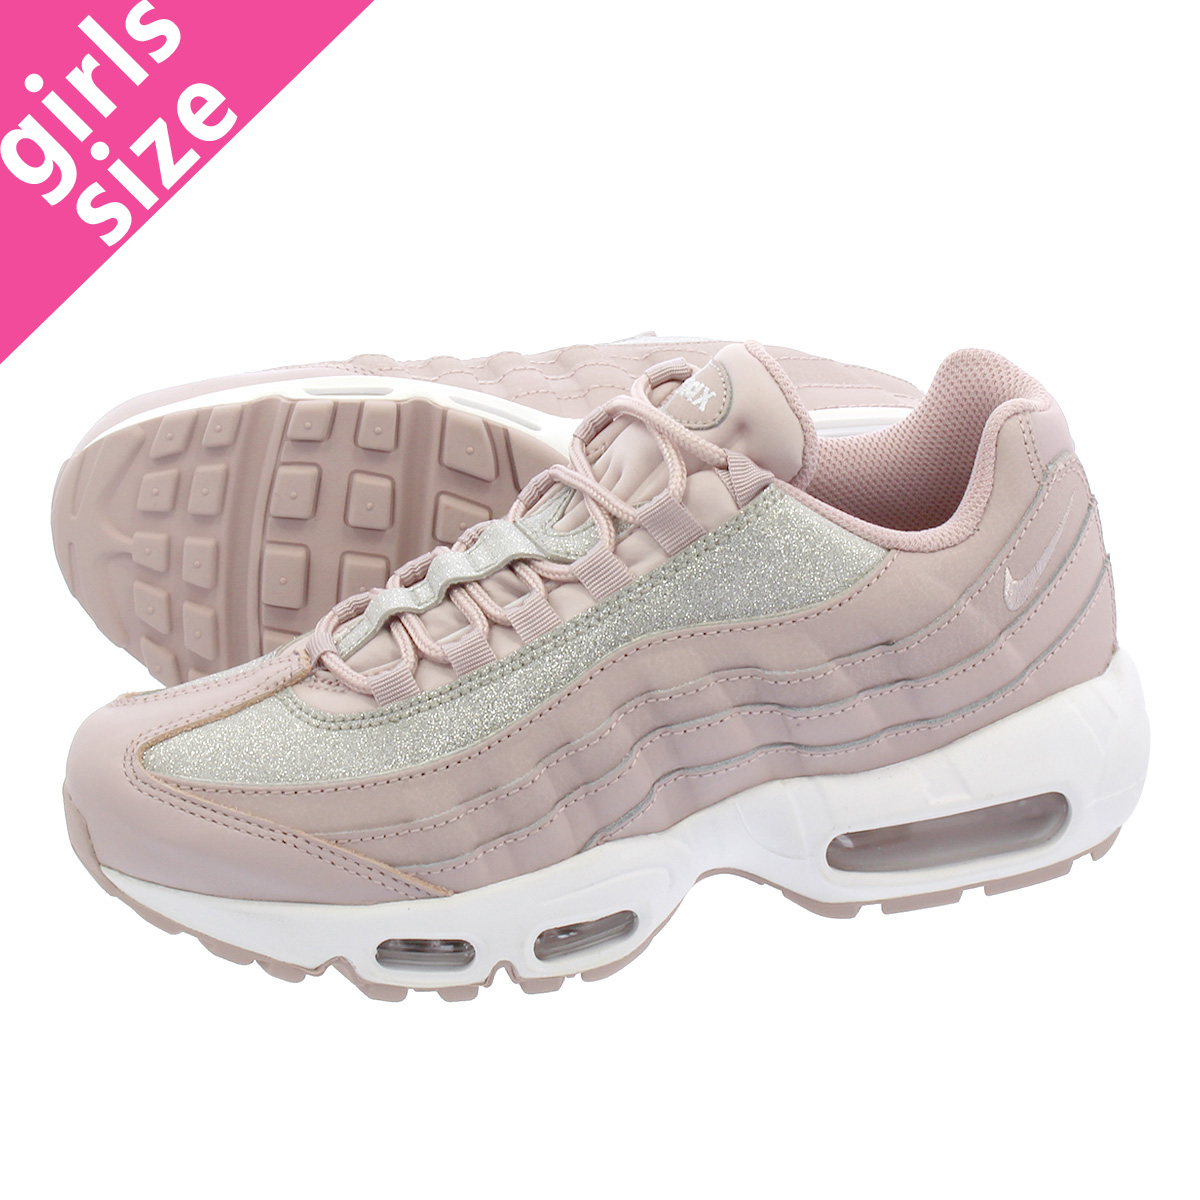 f29a1dd9b7 ... france nike wmns air max 95 se nike women air max 95 se particle rose  pure